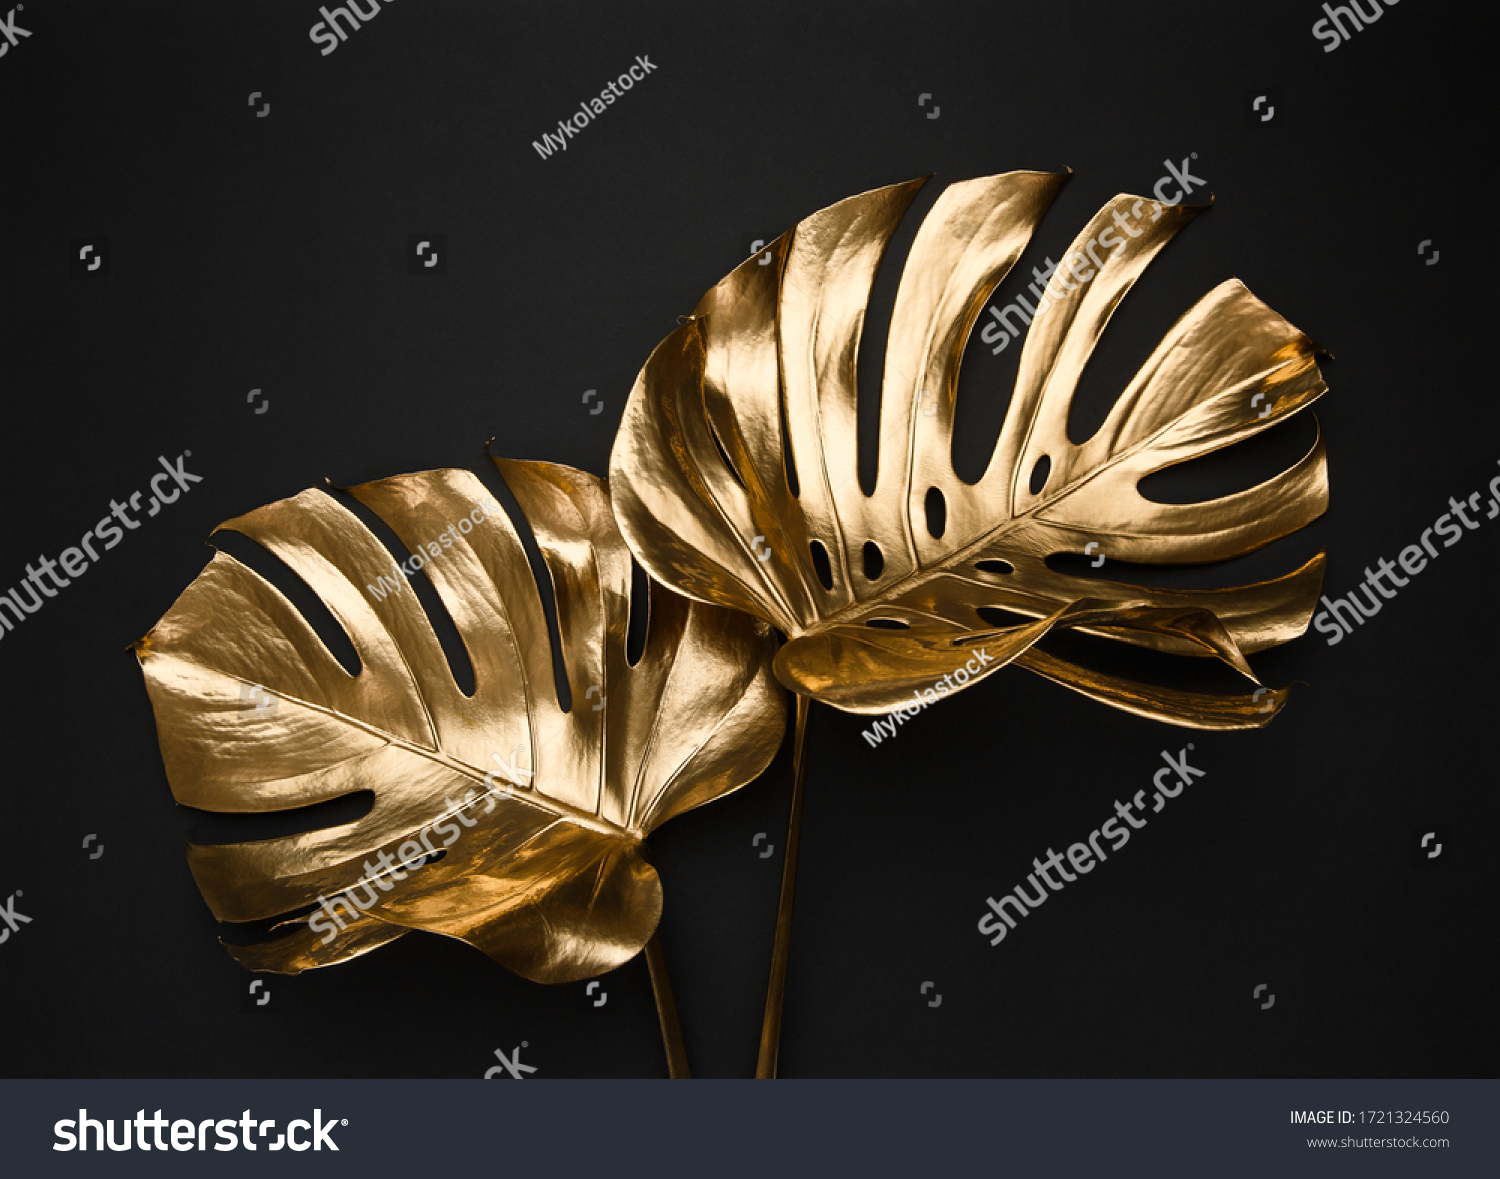 Closeup view of two luxurious golden painted tropical monstera leaves artistic composition. Abstract black background isolated. Creative jewelry concept. #1721324560